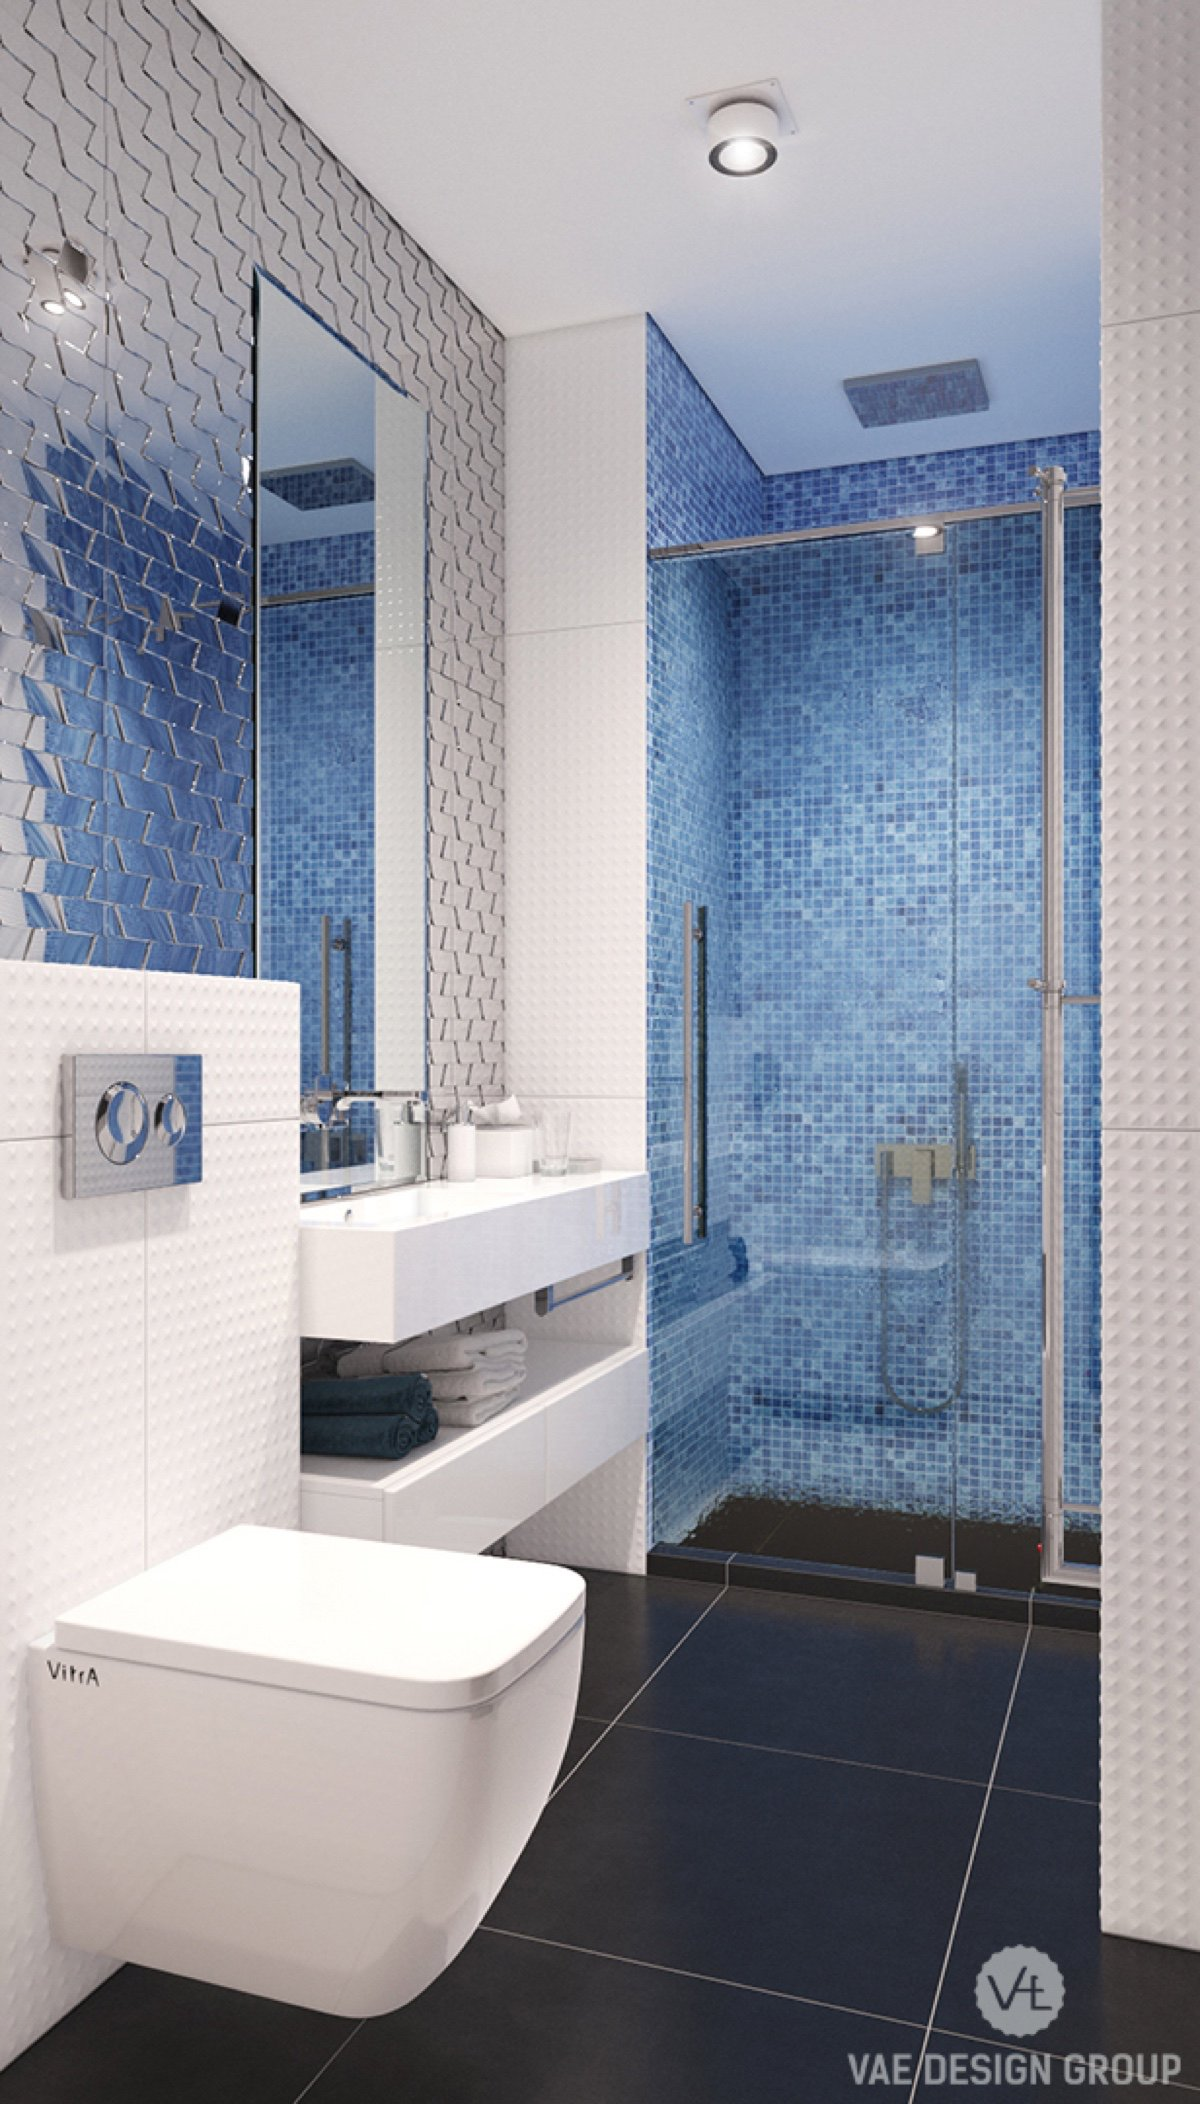 The family bathroom harks to the marine in an understated way. Metallic silver panelling behind the mirror extends it, reminiscent of fish scales. Electric blue tiling says swim, and textured white tiling ties it all together.